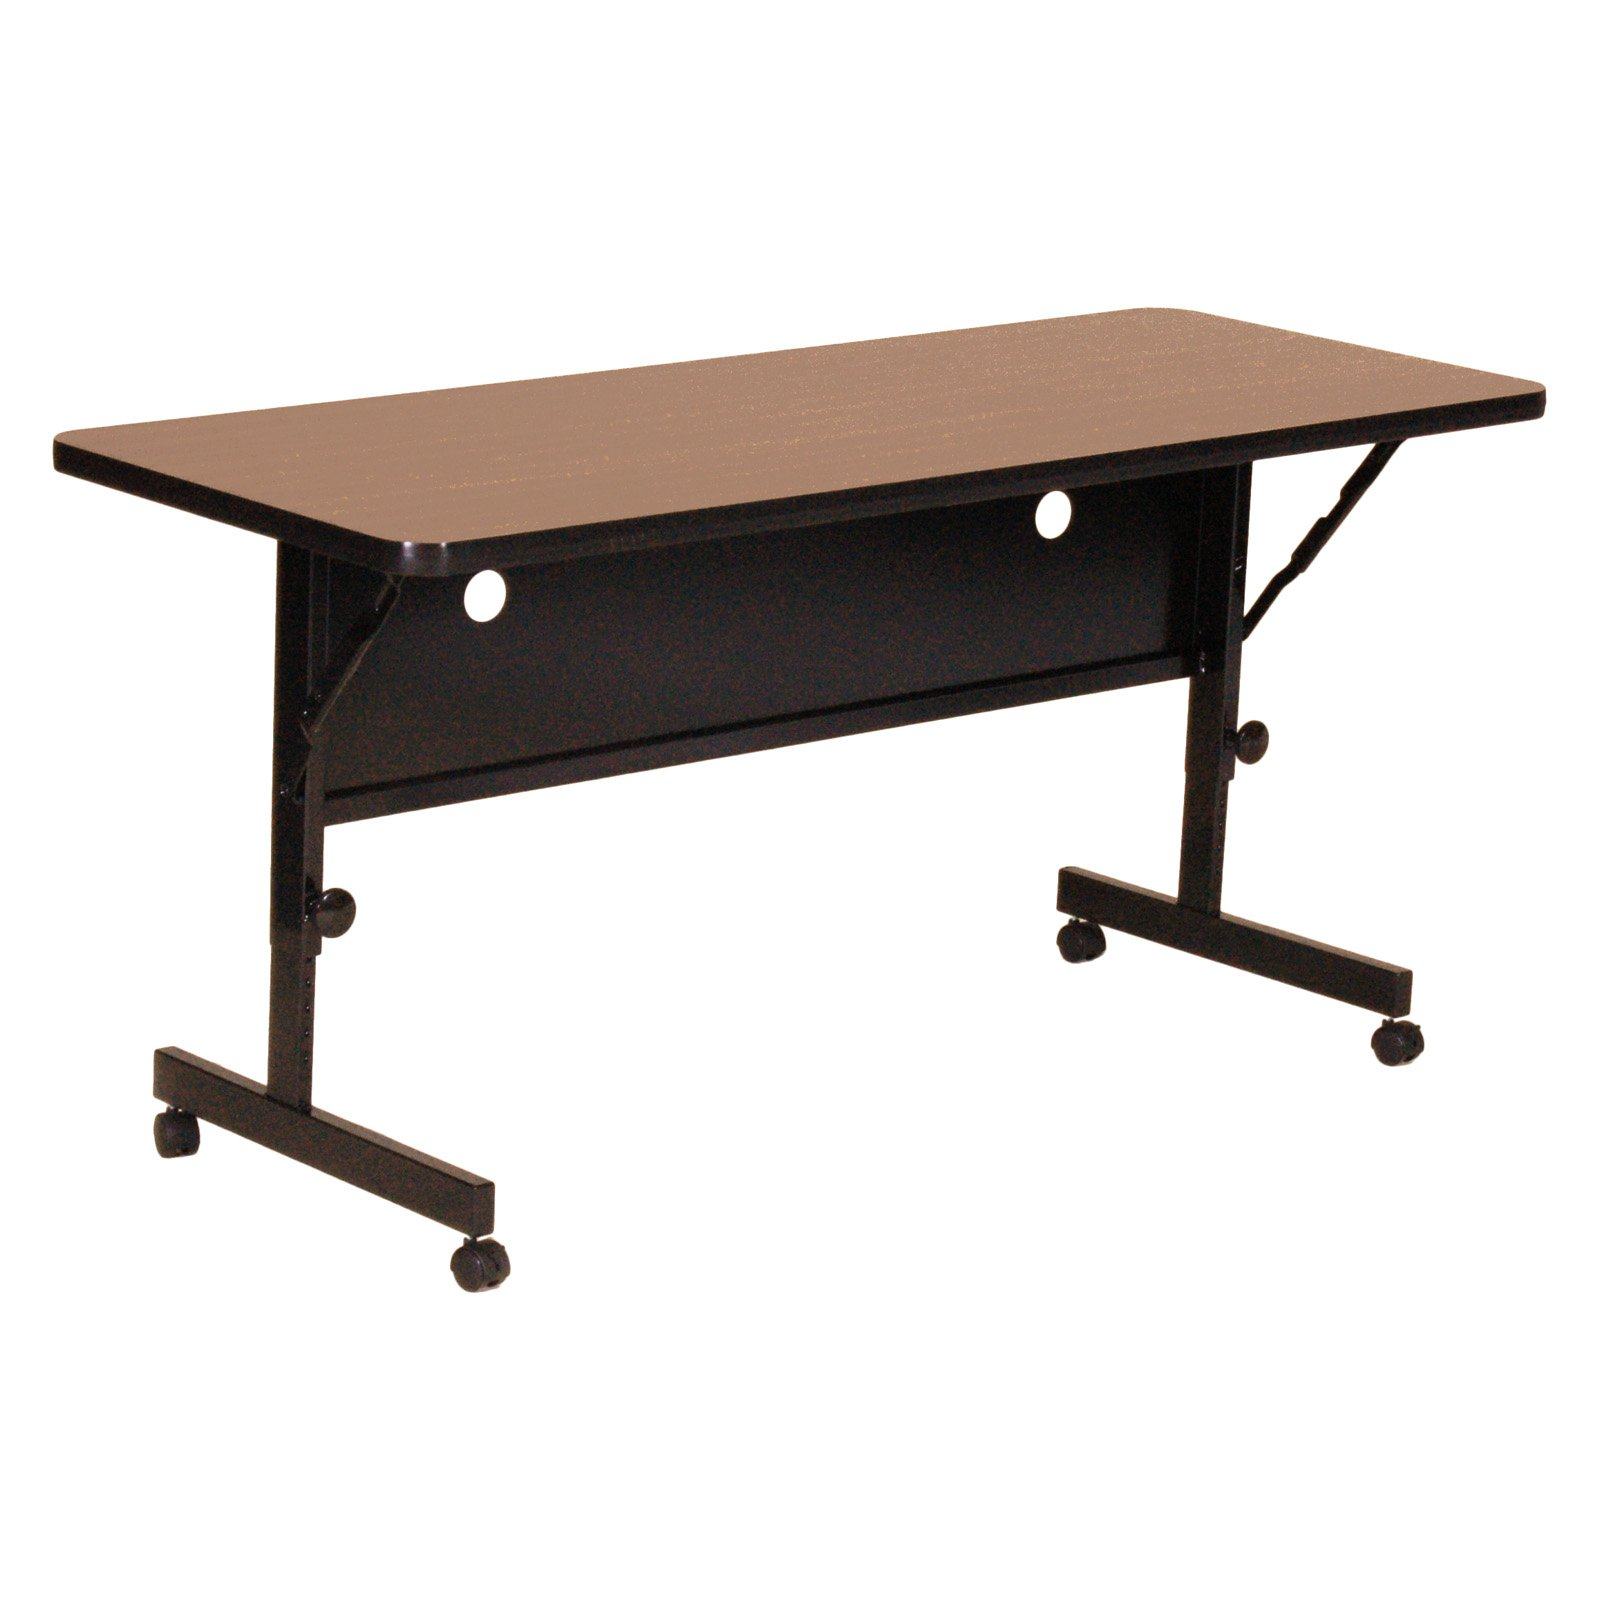 Correll Deluxe Flip Top Table - High Pressure Top - 24x48